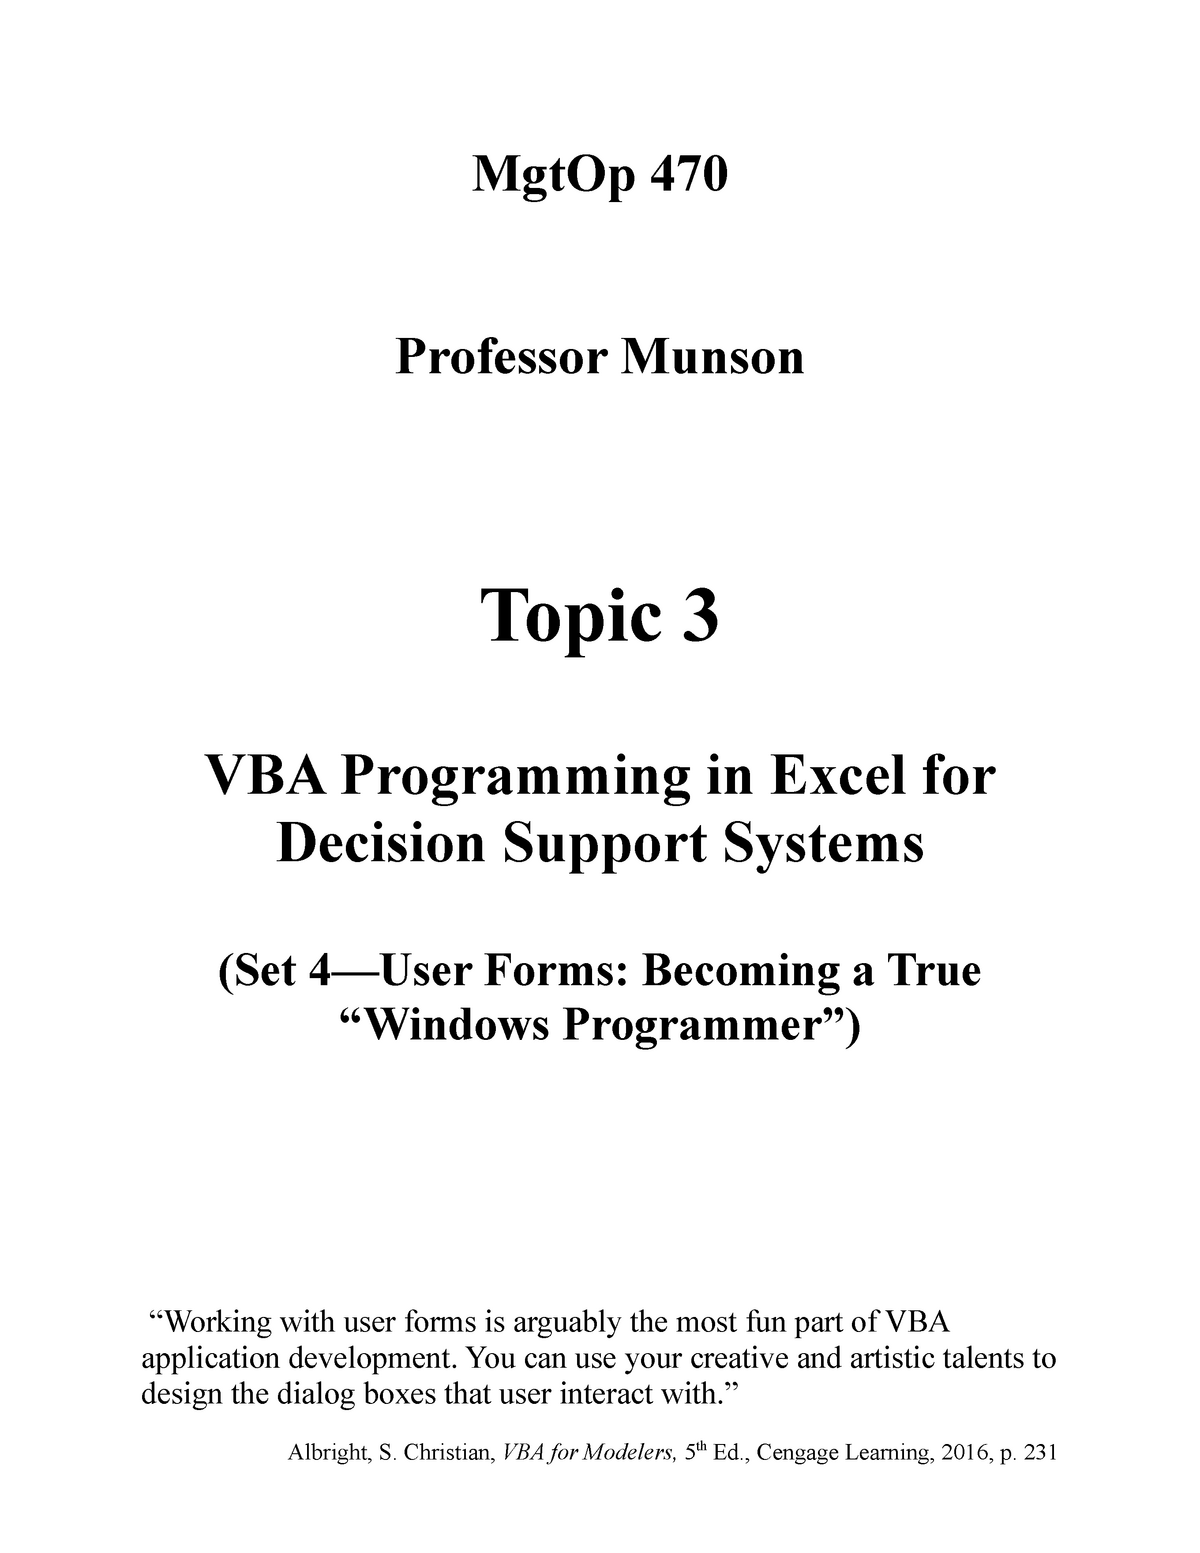 Topic 3 - VBA Programming in Excel for Decision Support